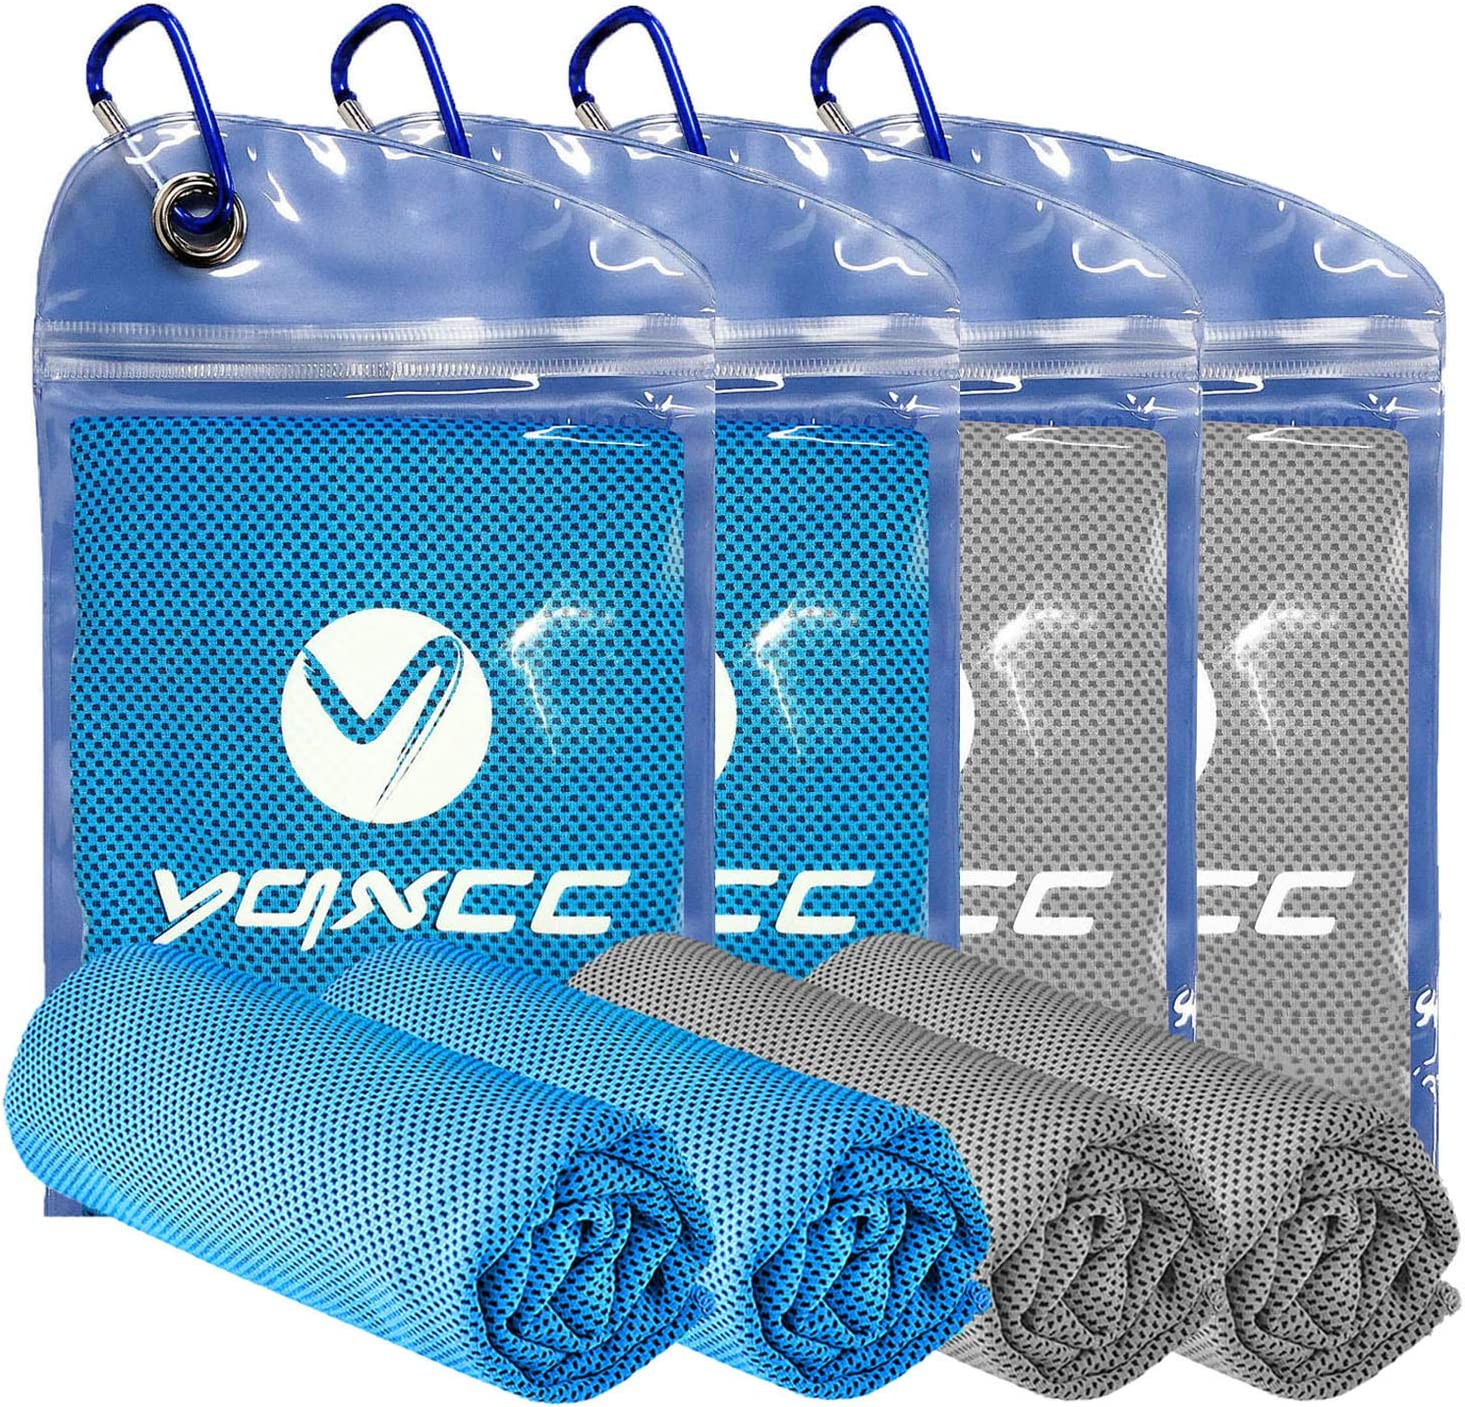 """YQXCC Cooling Towel 4 Packs (47""""x12"""") Microfiber Towel Yoga Towel for Men or Women Ice Cold Towels for Yoga Gym Travel Camping Golf Football & Outdoor Sports (Light Blue2/Light Gray2)"""